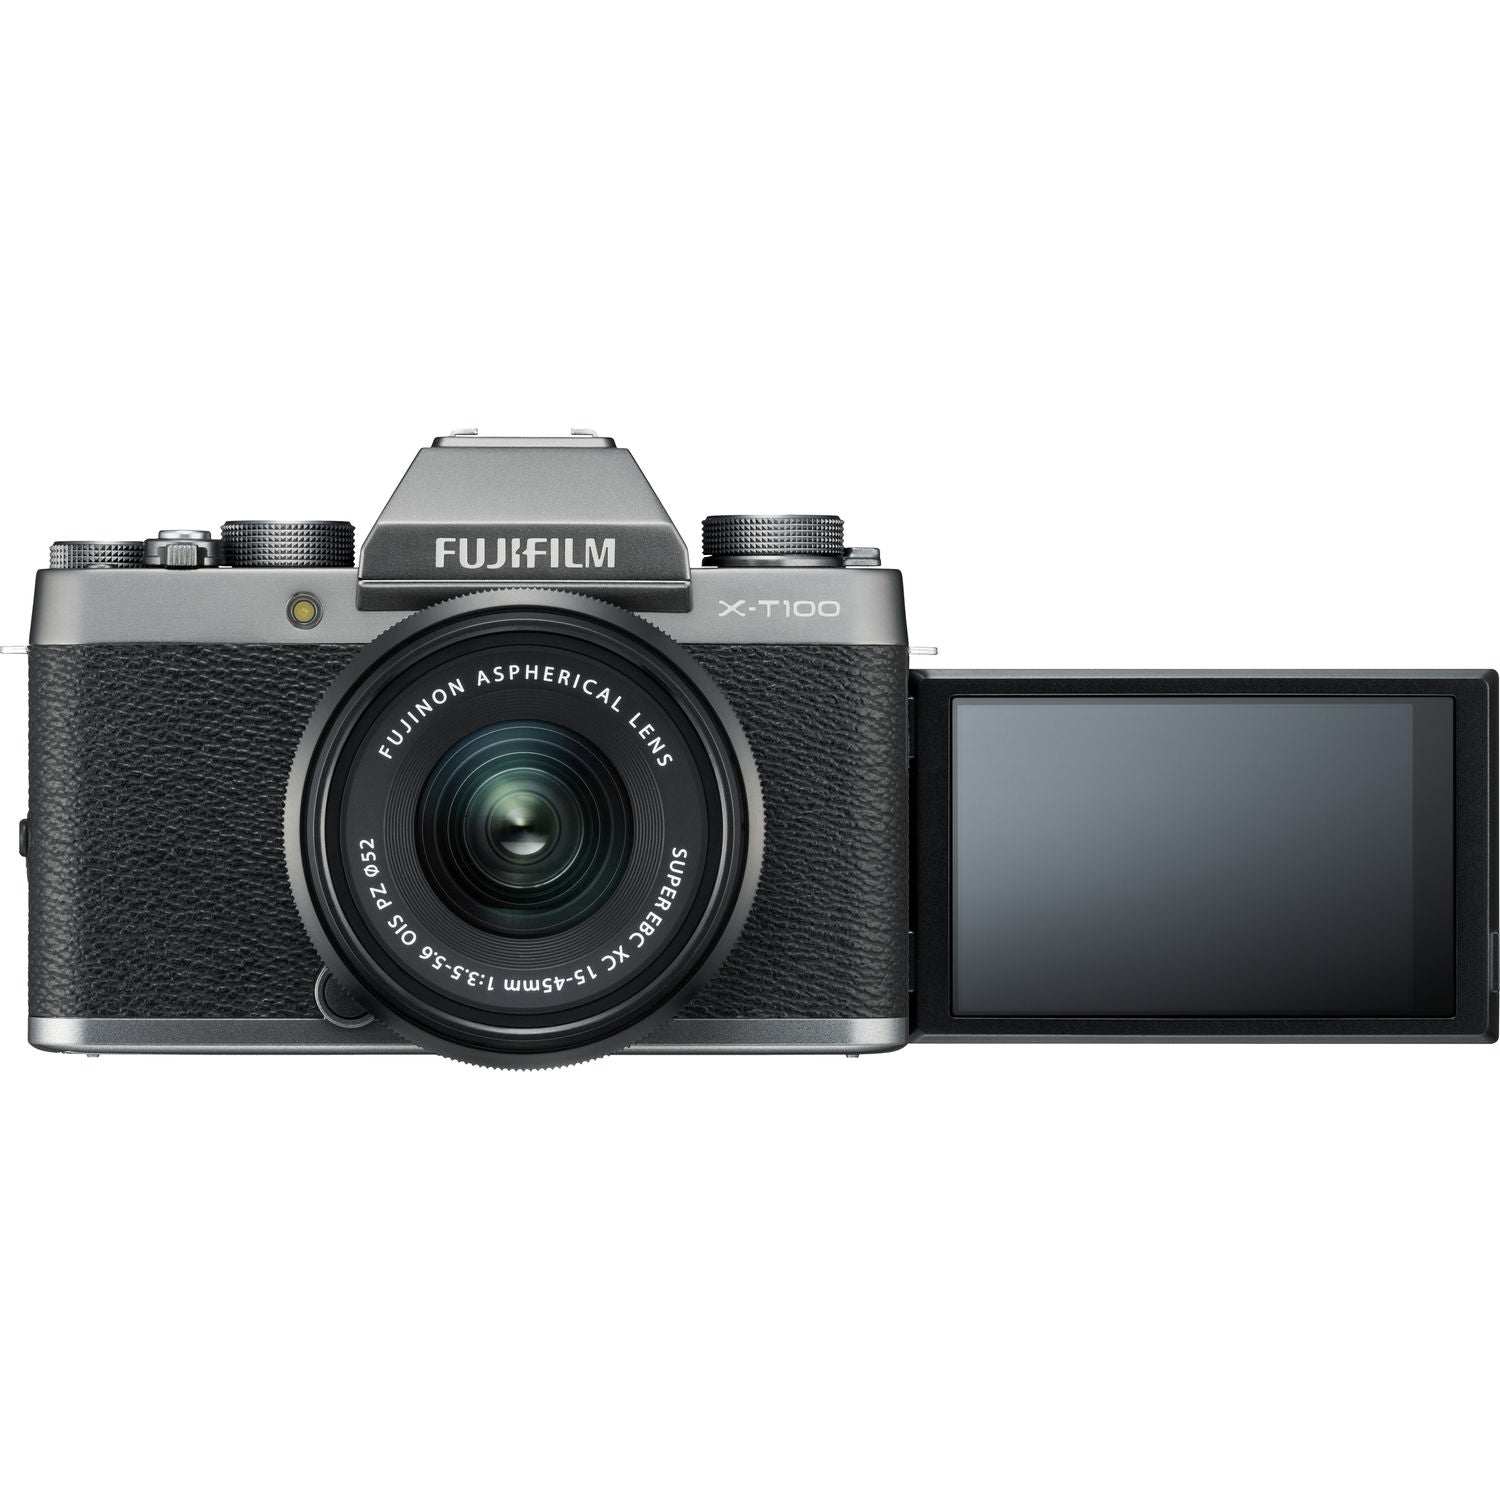 FUJIFILM X-T100 Mirrorless Digital Camera with 15-45mm Lens (Dark Silver)